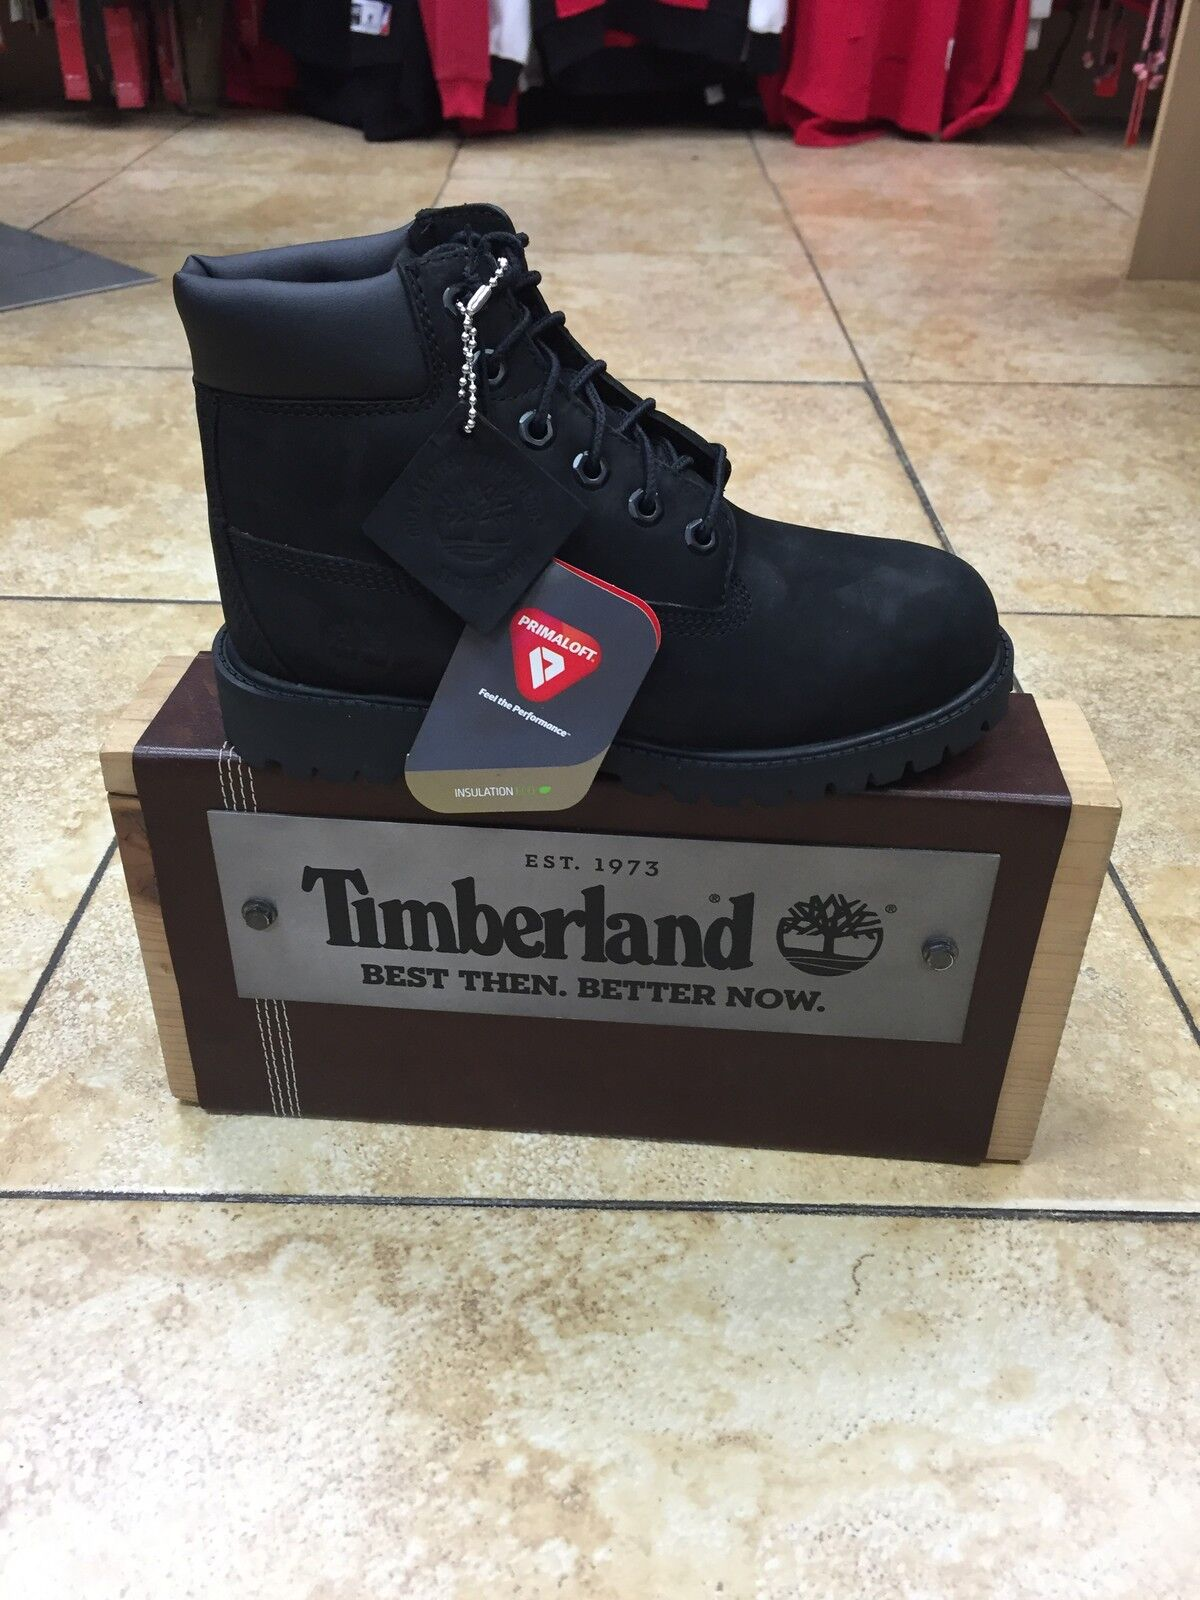 12807 TIMBERLAND BLACK KIDS INFANT 6-INCH CLASSIC WATERPROOF BOOT